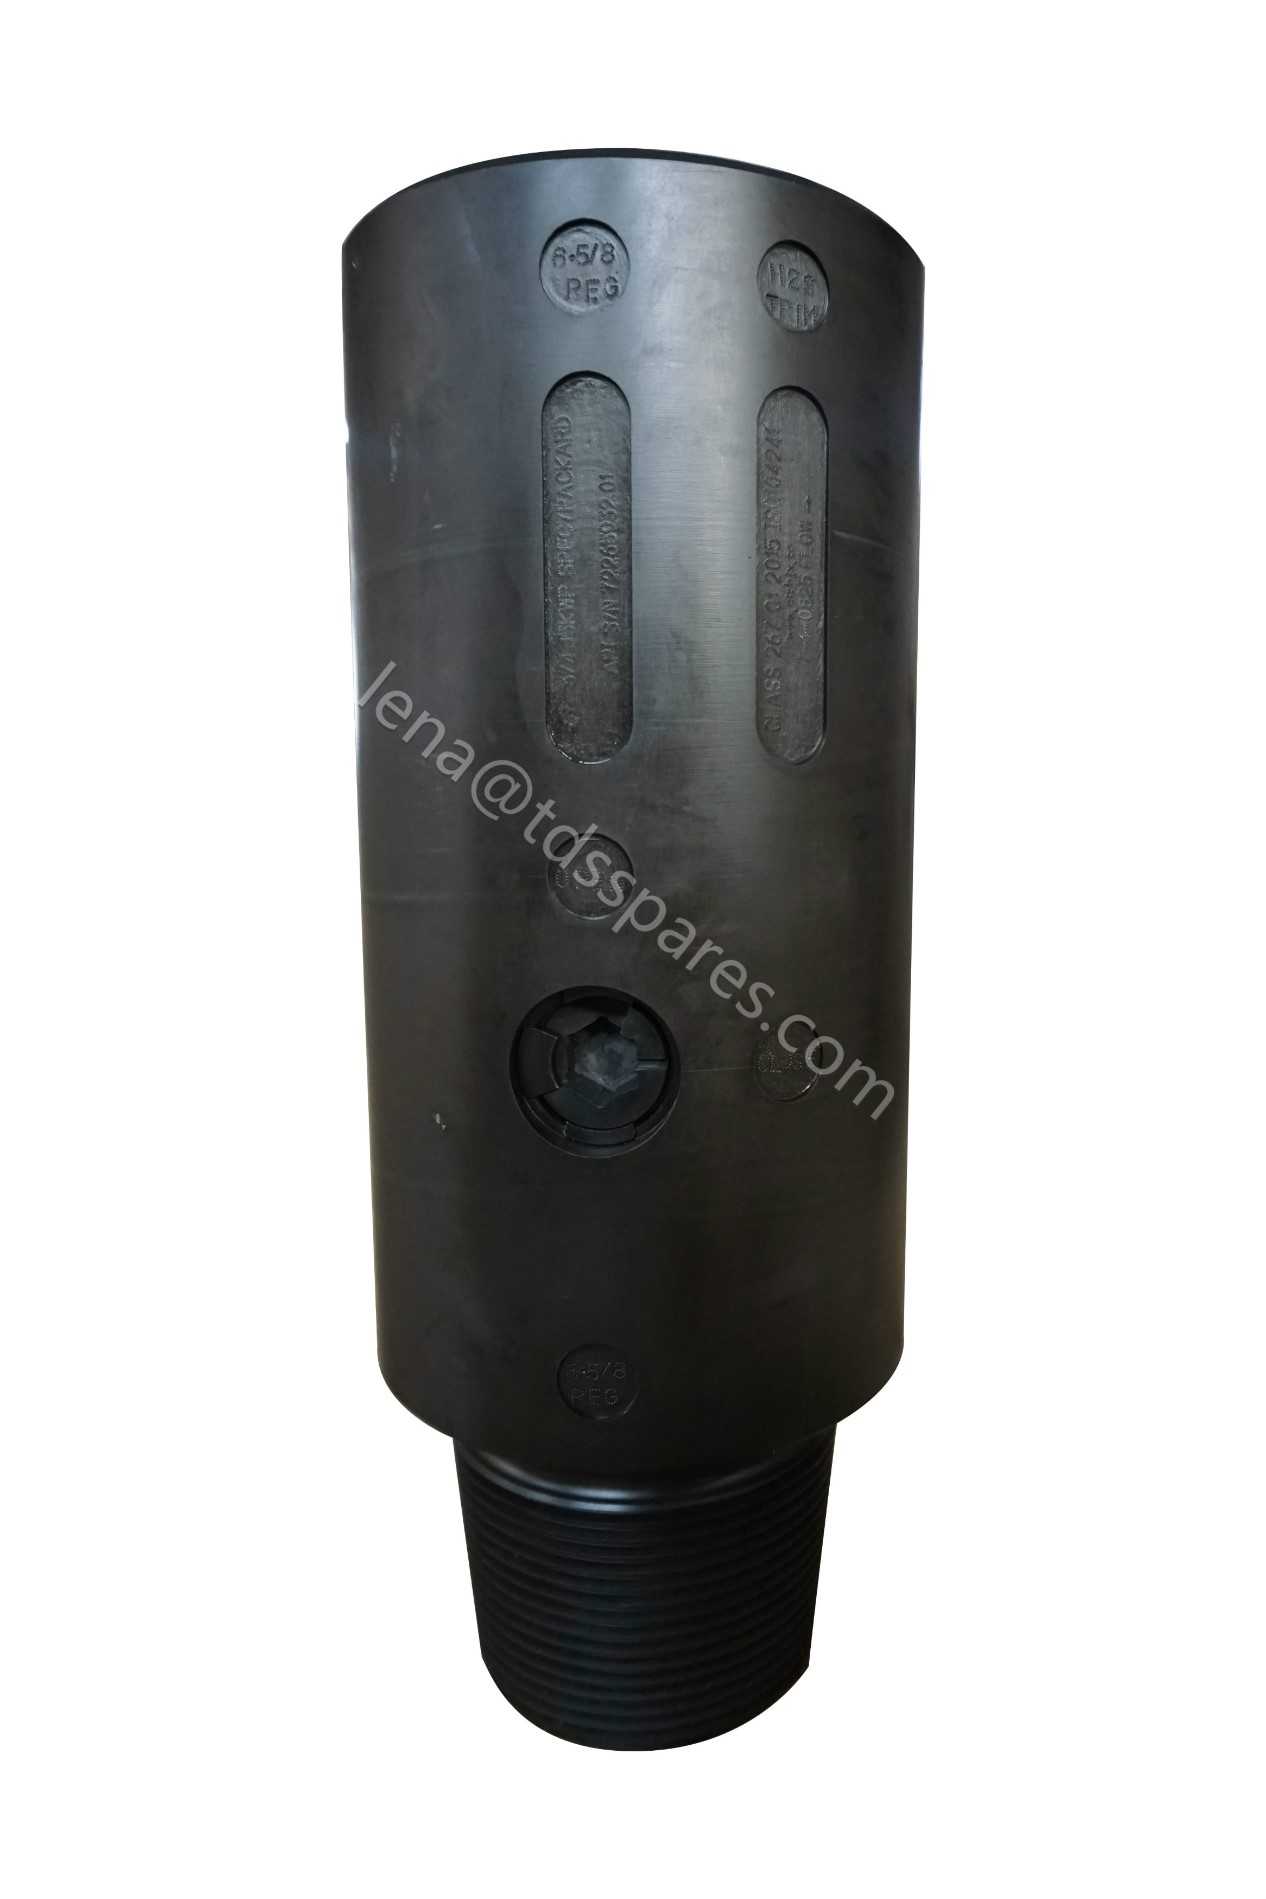 JH SLC Top Drive Drilling IBOP Manufacturers, JH SLC Top Drive Drilling IBOP Factory, Supply JH SLC Top Drive Drilling IBOP